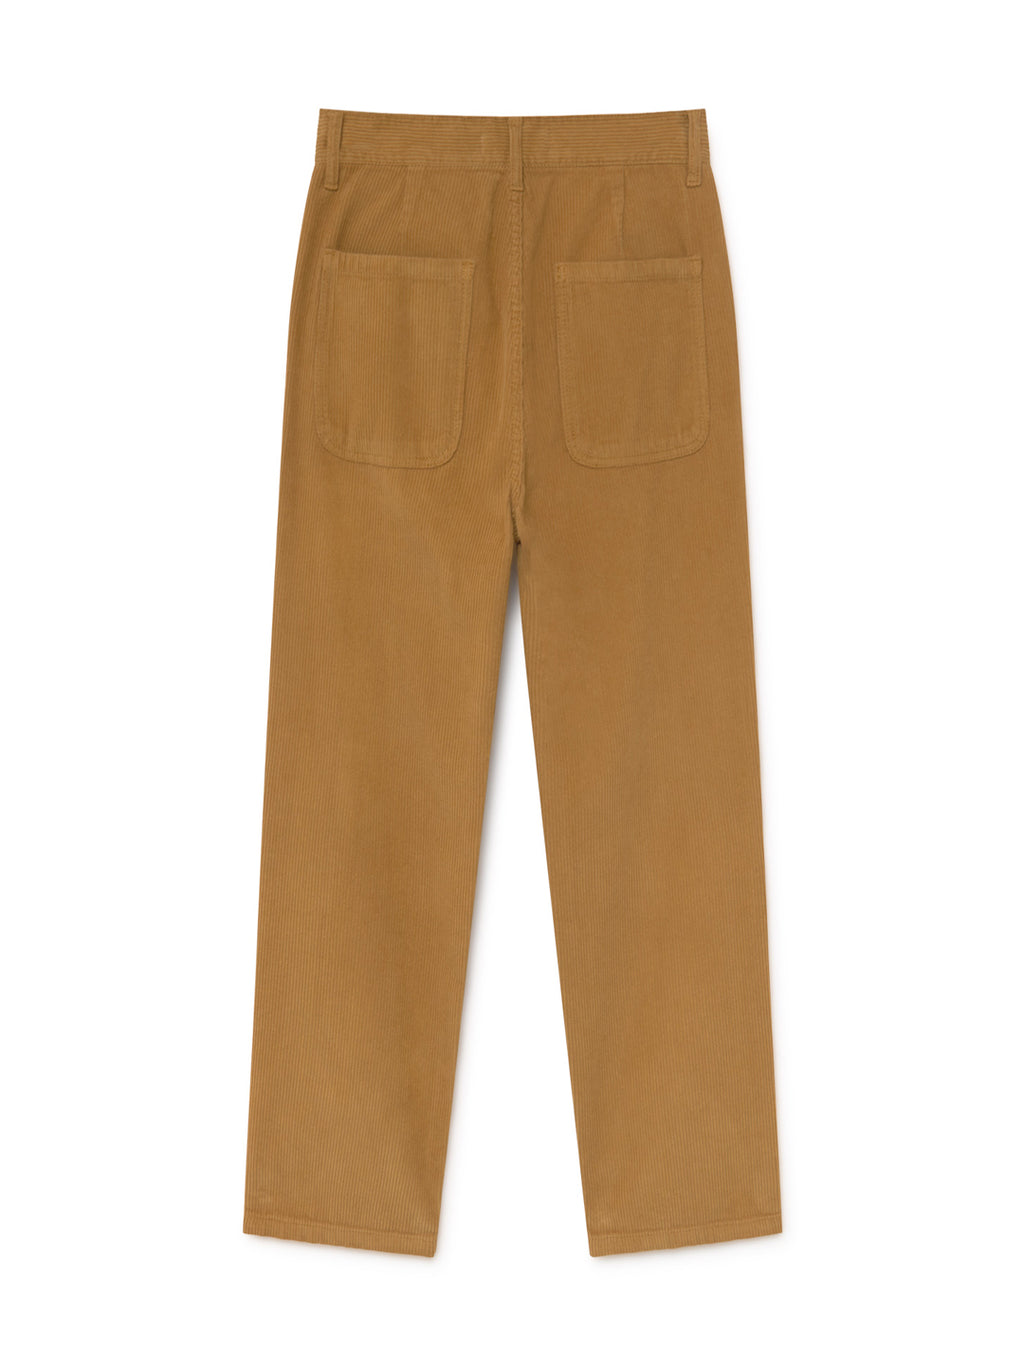 TWOTHIRDS Women Pants: Waglan - Mustard back